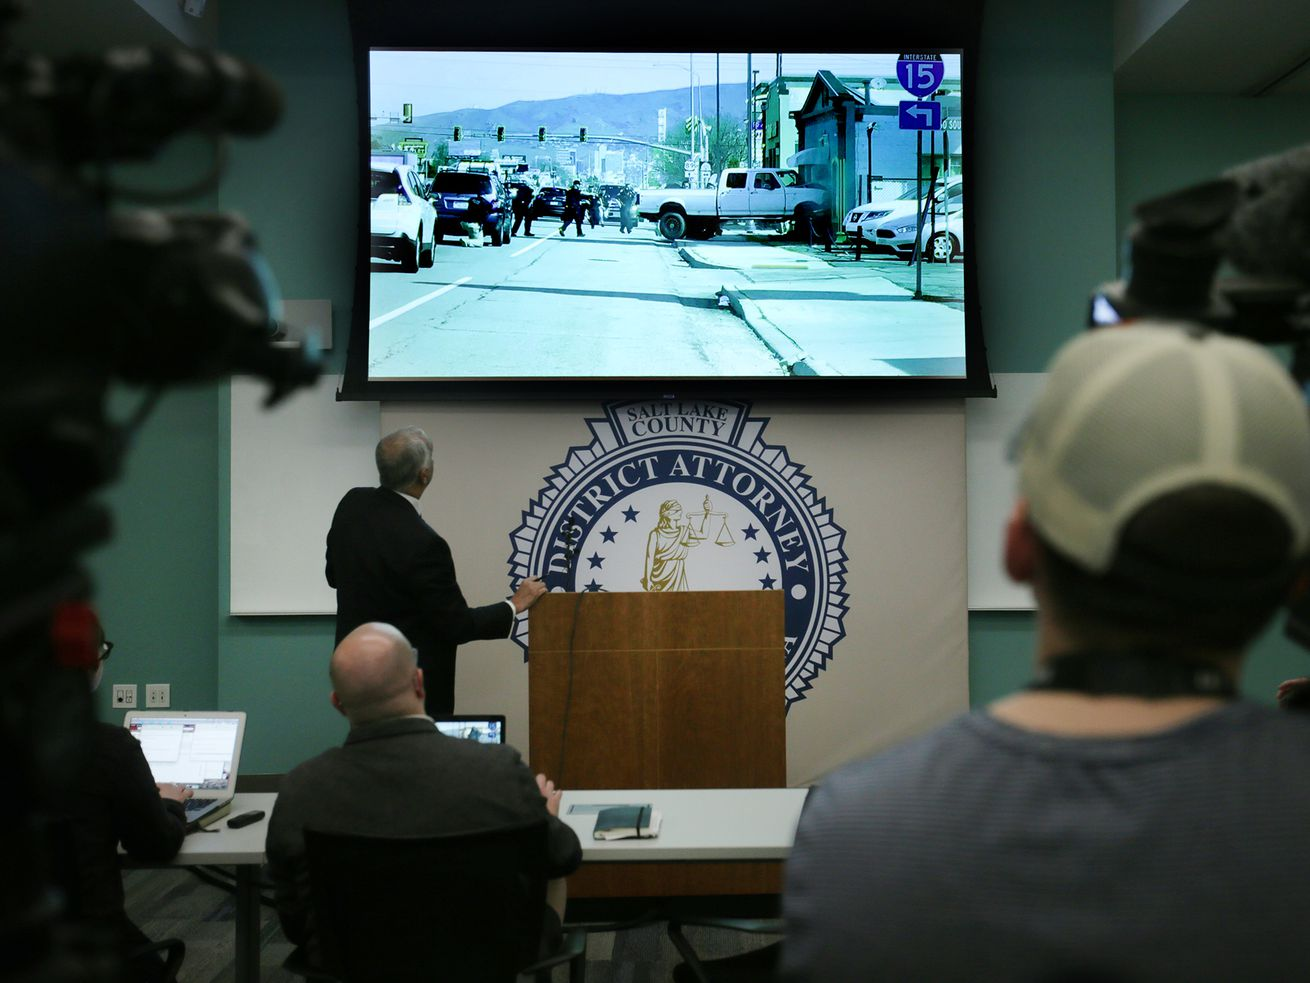 Salt Lake County District Attorney Sim Gill discusses video footage from an officer-involved shooting during a press conference at the Salt Lake County District Attorney's Office in Salt Lake City on Friday, Feb. 14, 2020. The April shooting left Harold Vincent Robinson dead following a dramatic high-speed chase that ended when Robinson crashed into he front of a store on State Street. Gill found the 10 Salt Lake police officers, three Utah Highway Patrol troopers and two Unified police officers were justified in the use of deadly force.